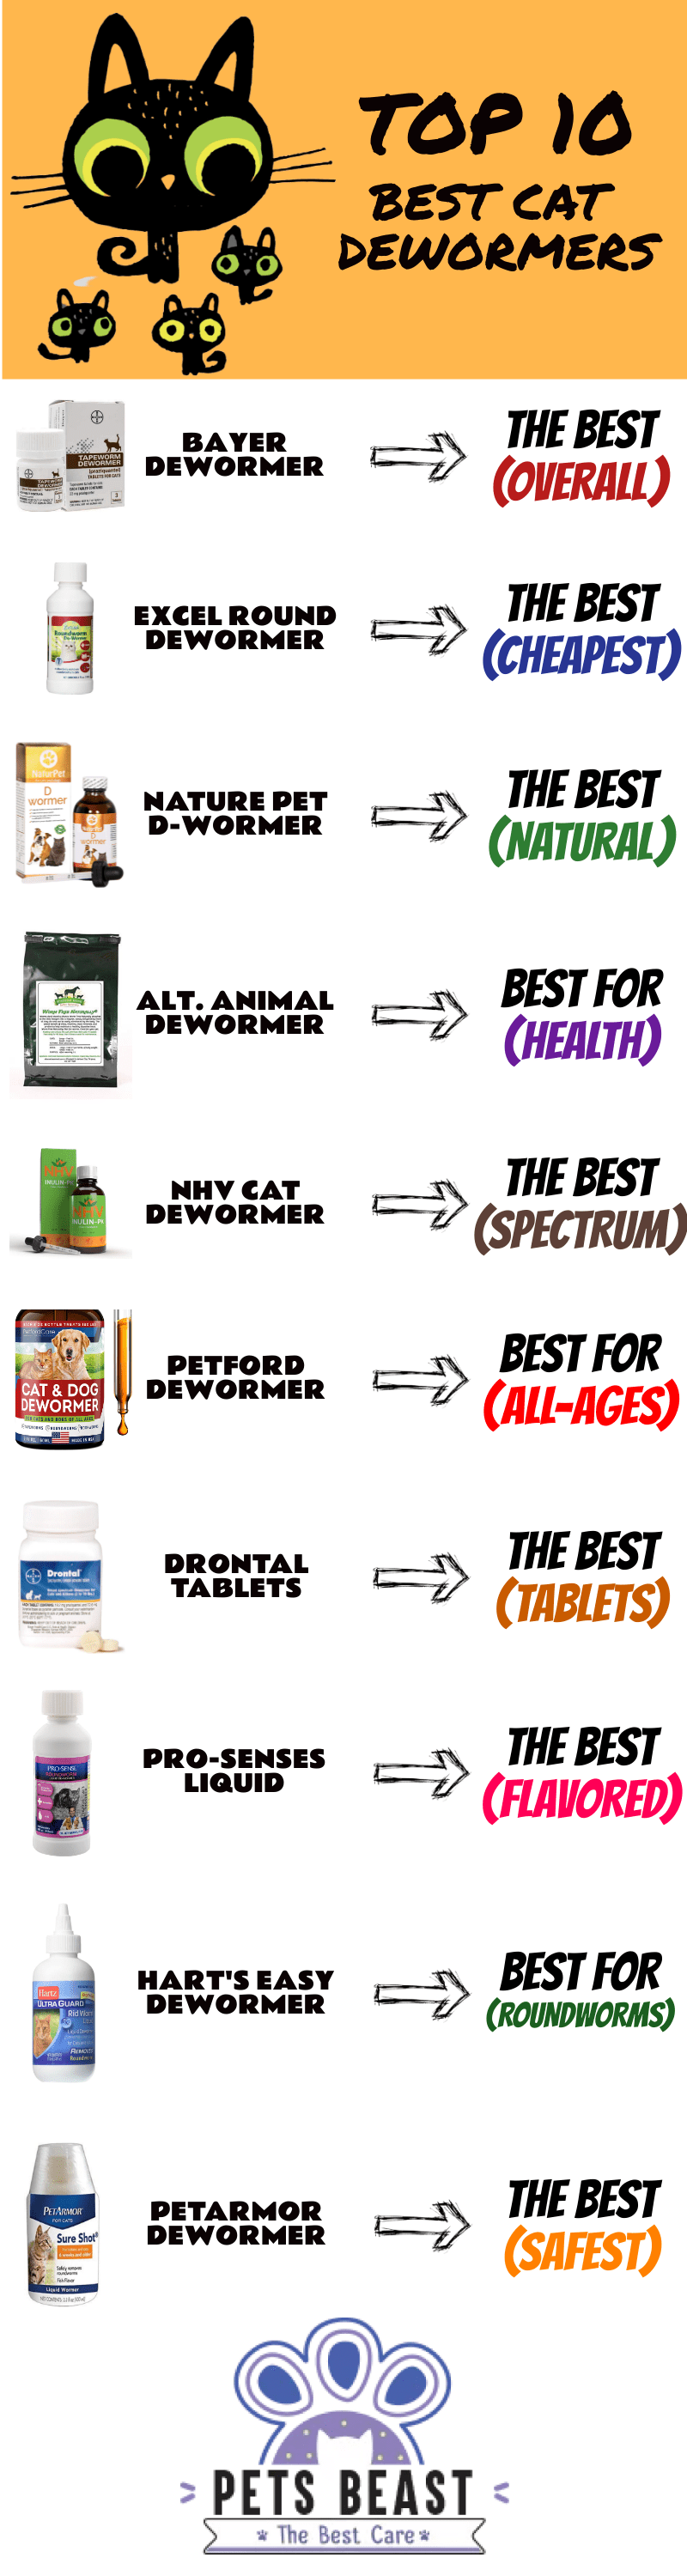 Best Cat Dewormers